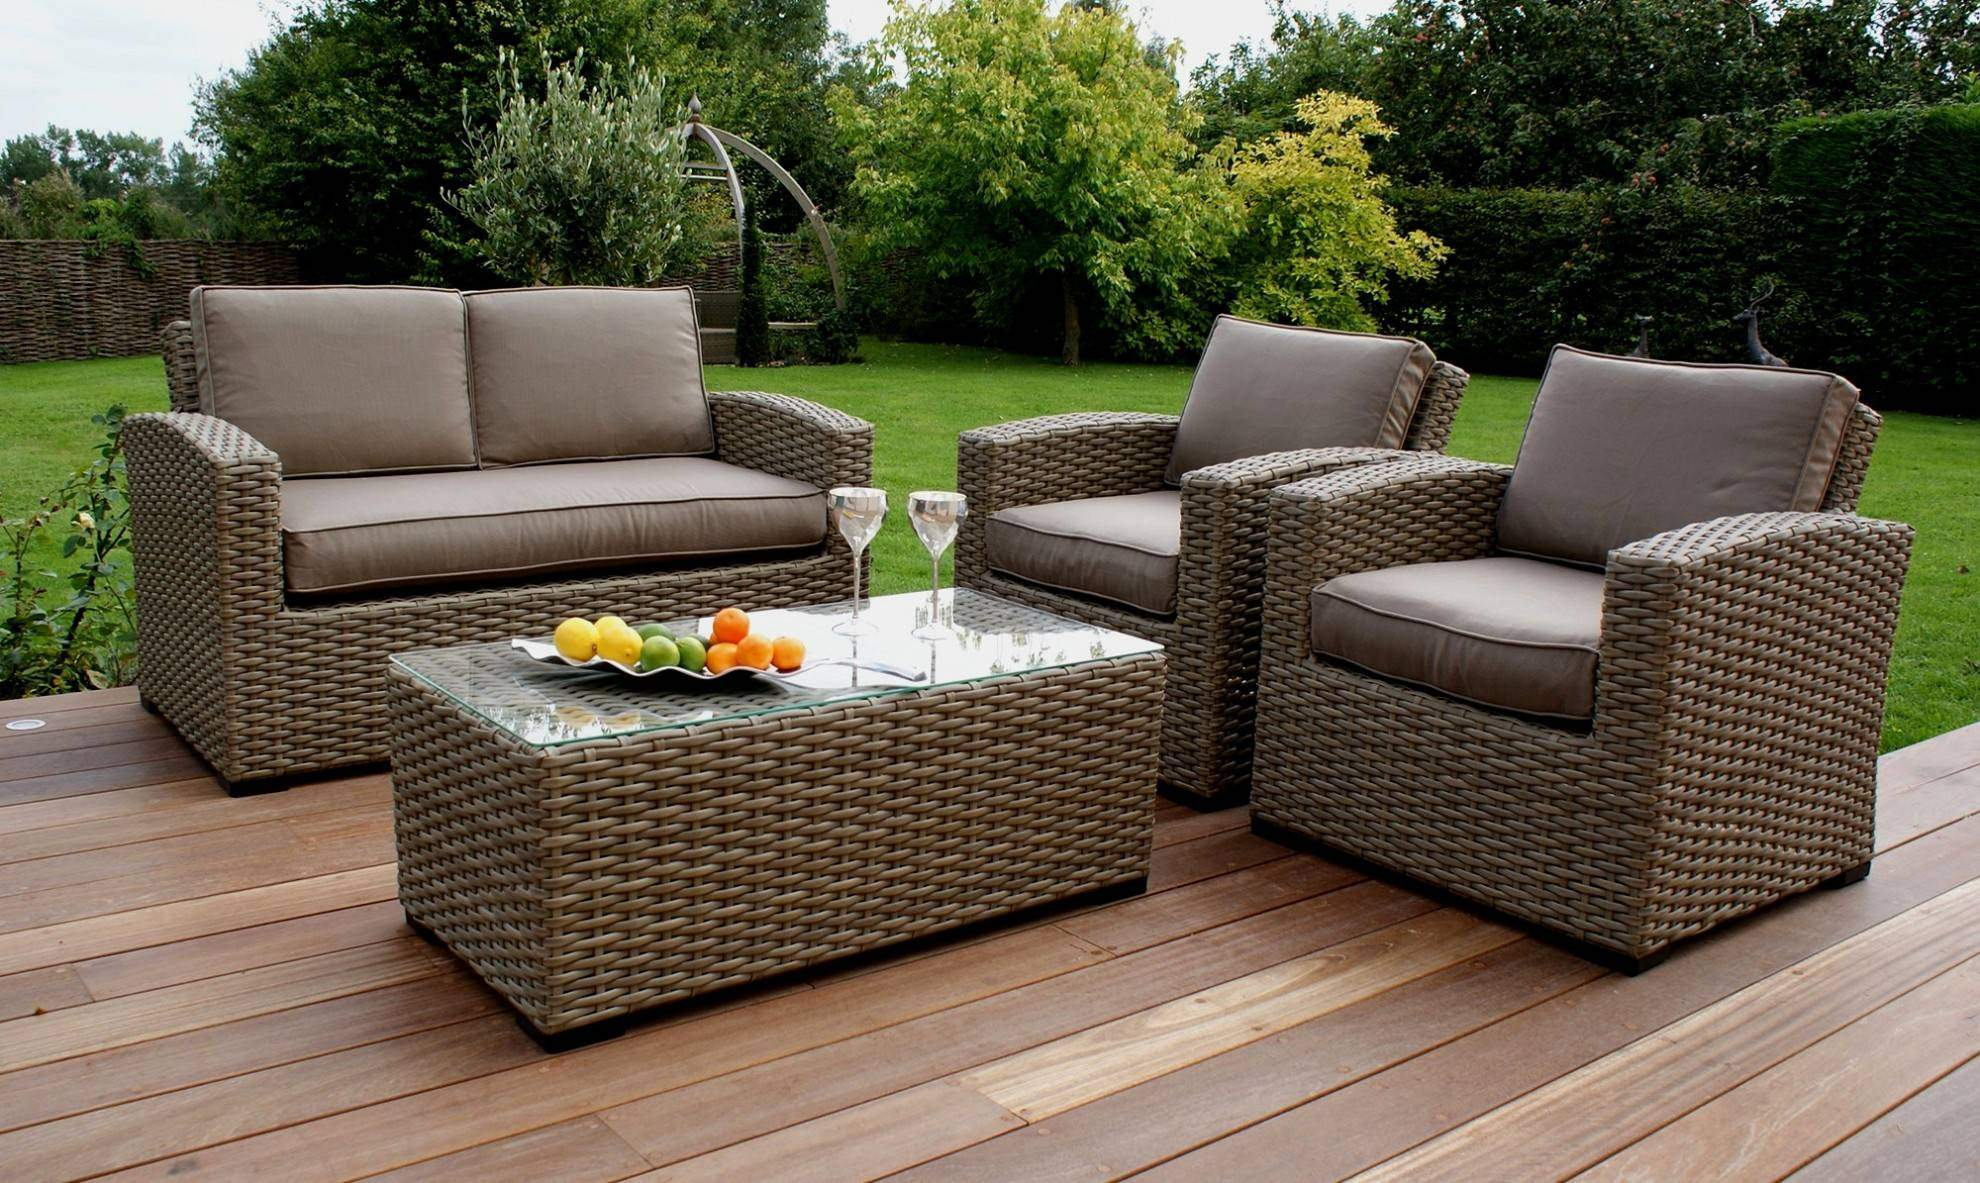 wohnzimmermobel angebote luxus flower sofa elegant wicker outdoor sofa 0d patio chairs sale of wohnzimmermobel angebote